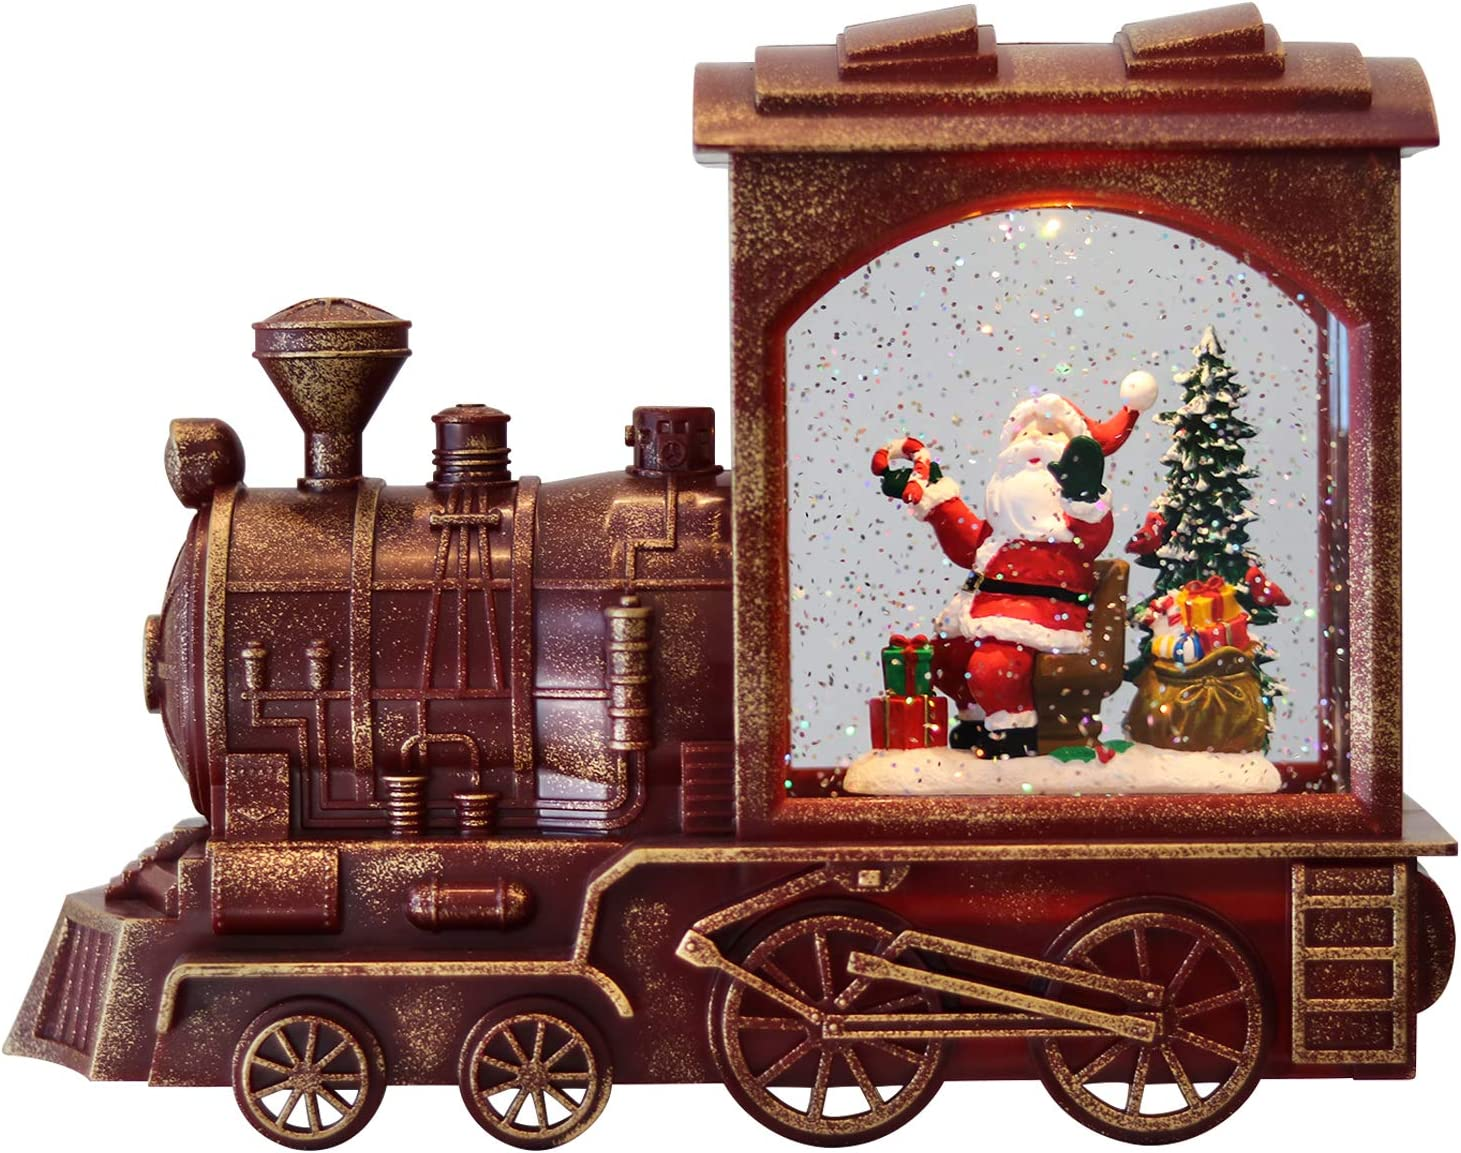 Eldnacele Singing Christmas Train Snow Globe with Music & Timer, Lighted-up Battery Operated Glittering Lantern for Christmas Table Centerpiece Decoration and Gift- Santa